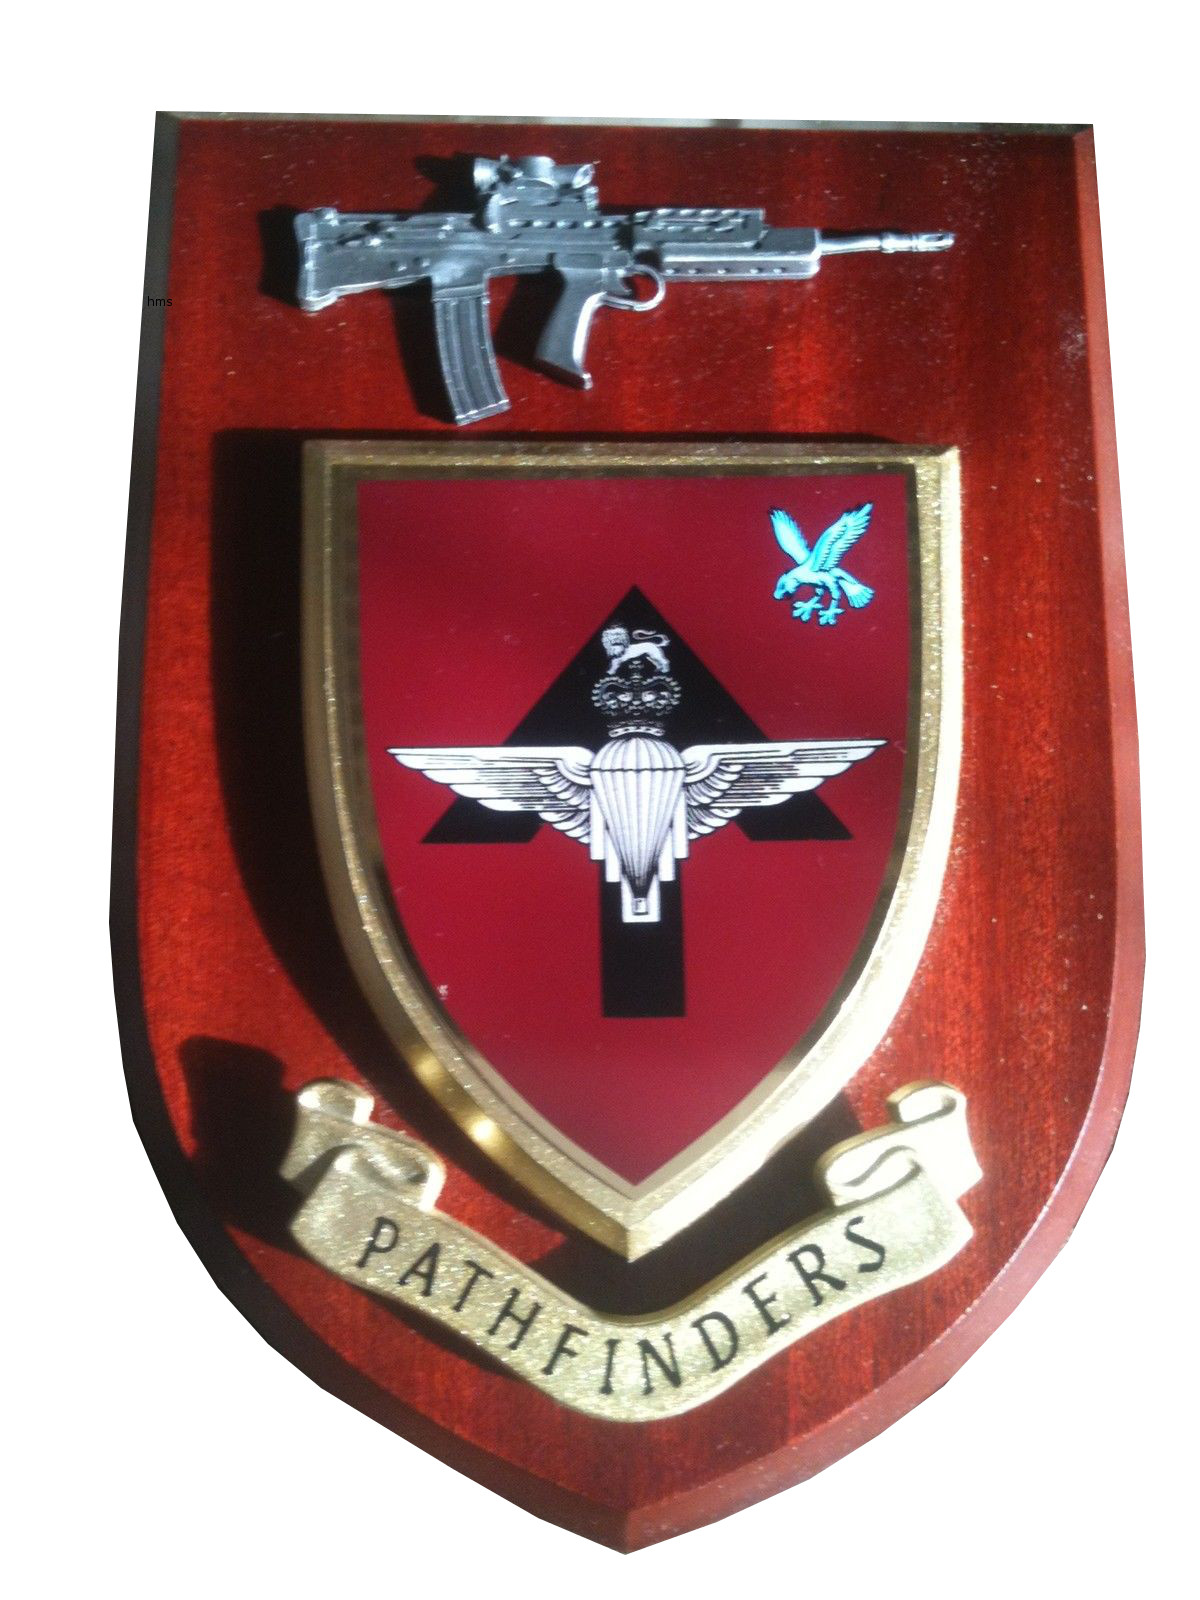 Pathfinders New Style Regiment Military Wall Plaque Pewter